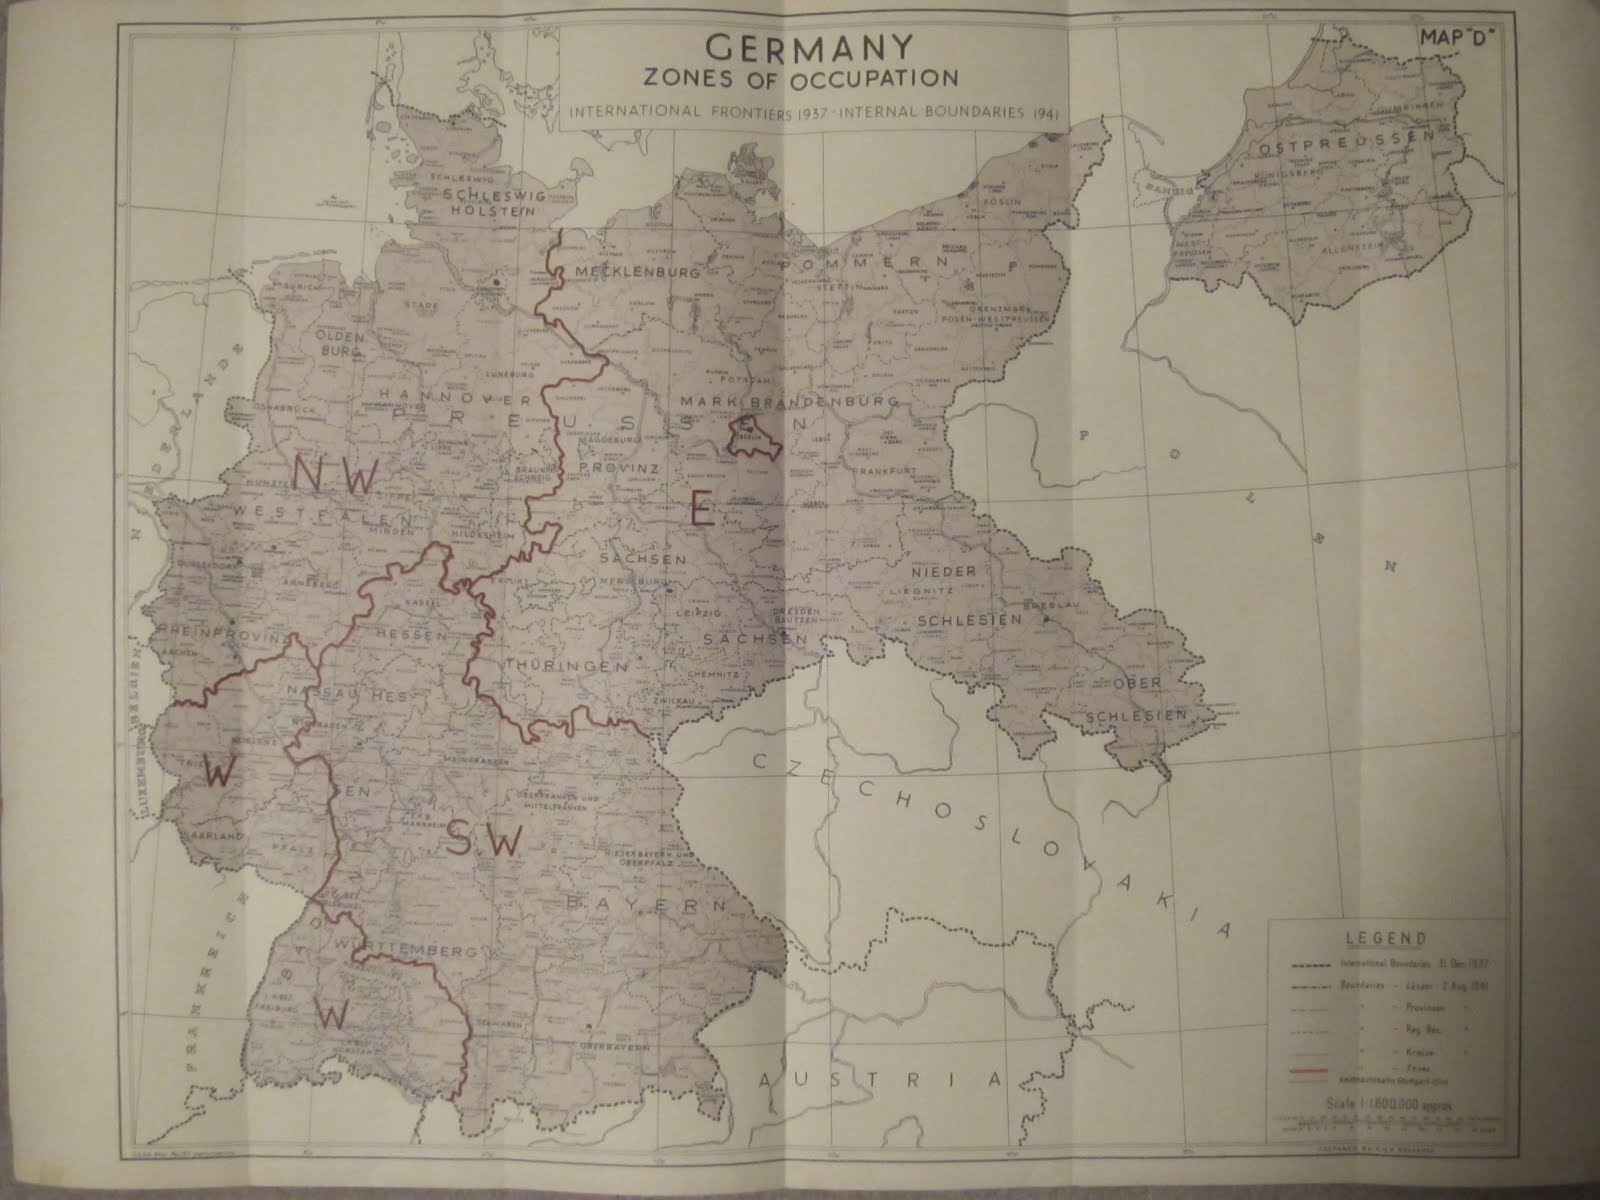 Historical Maps Of Germany Page - Germany map zones